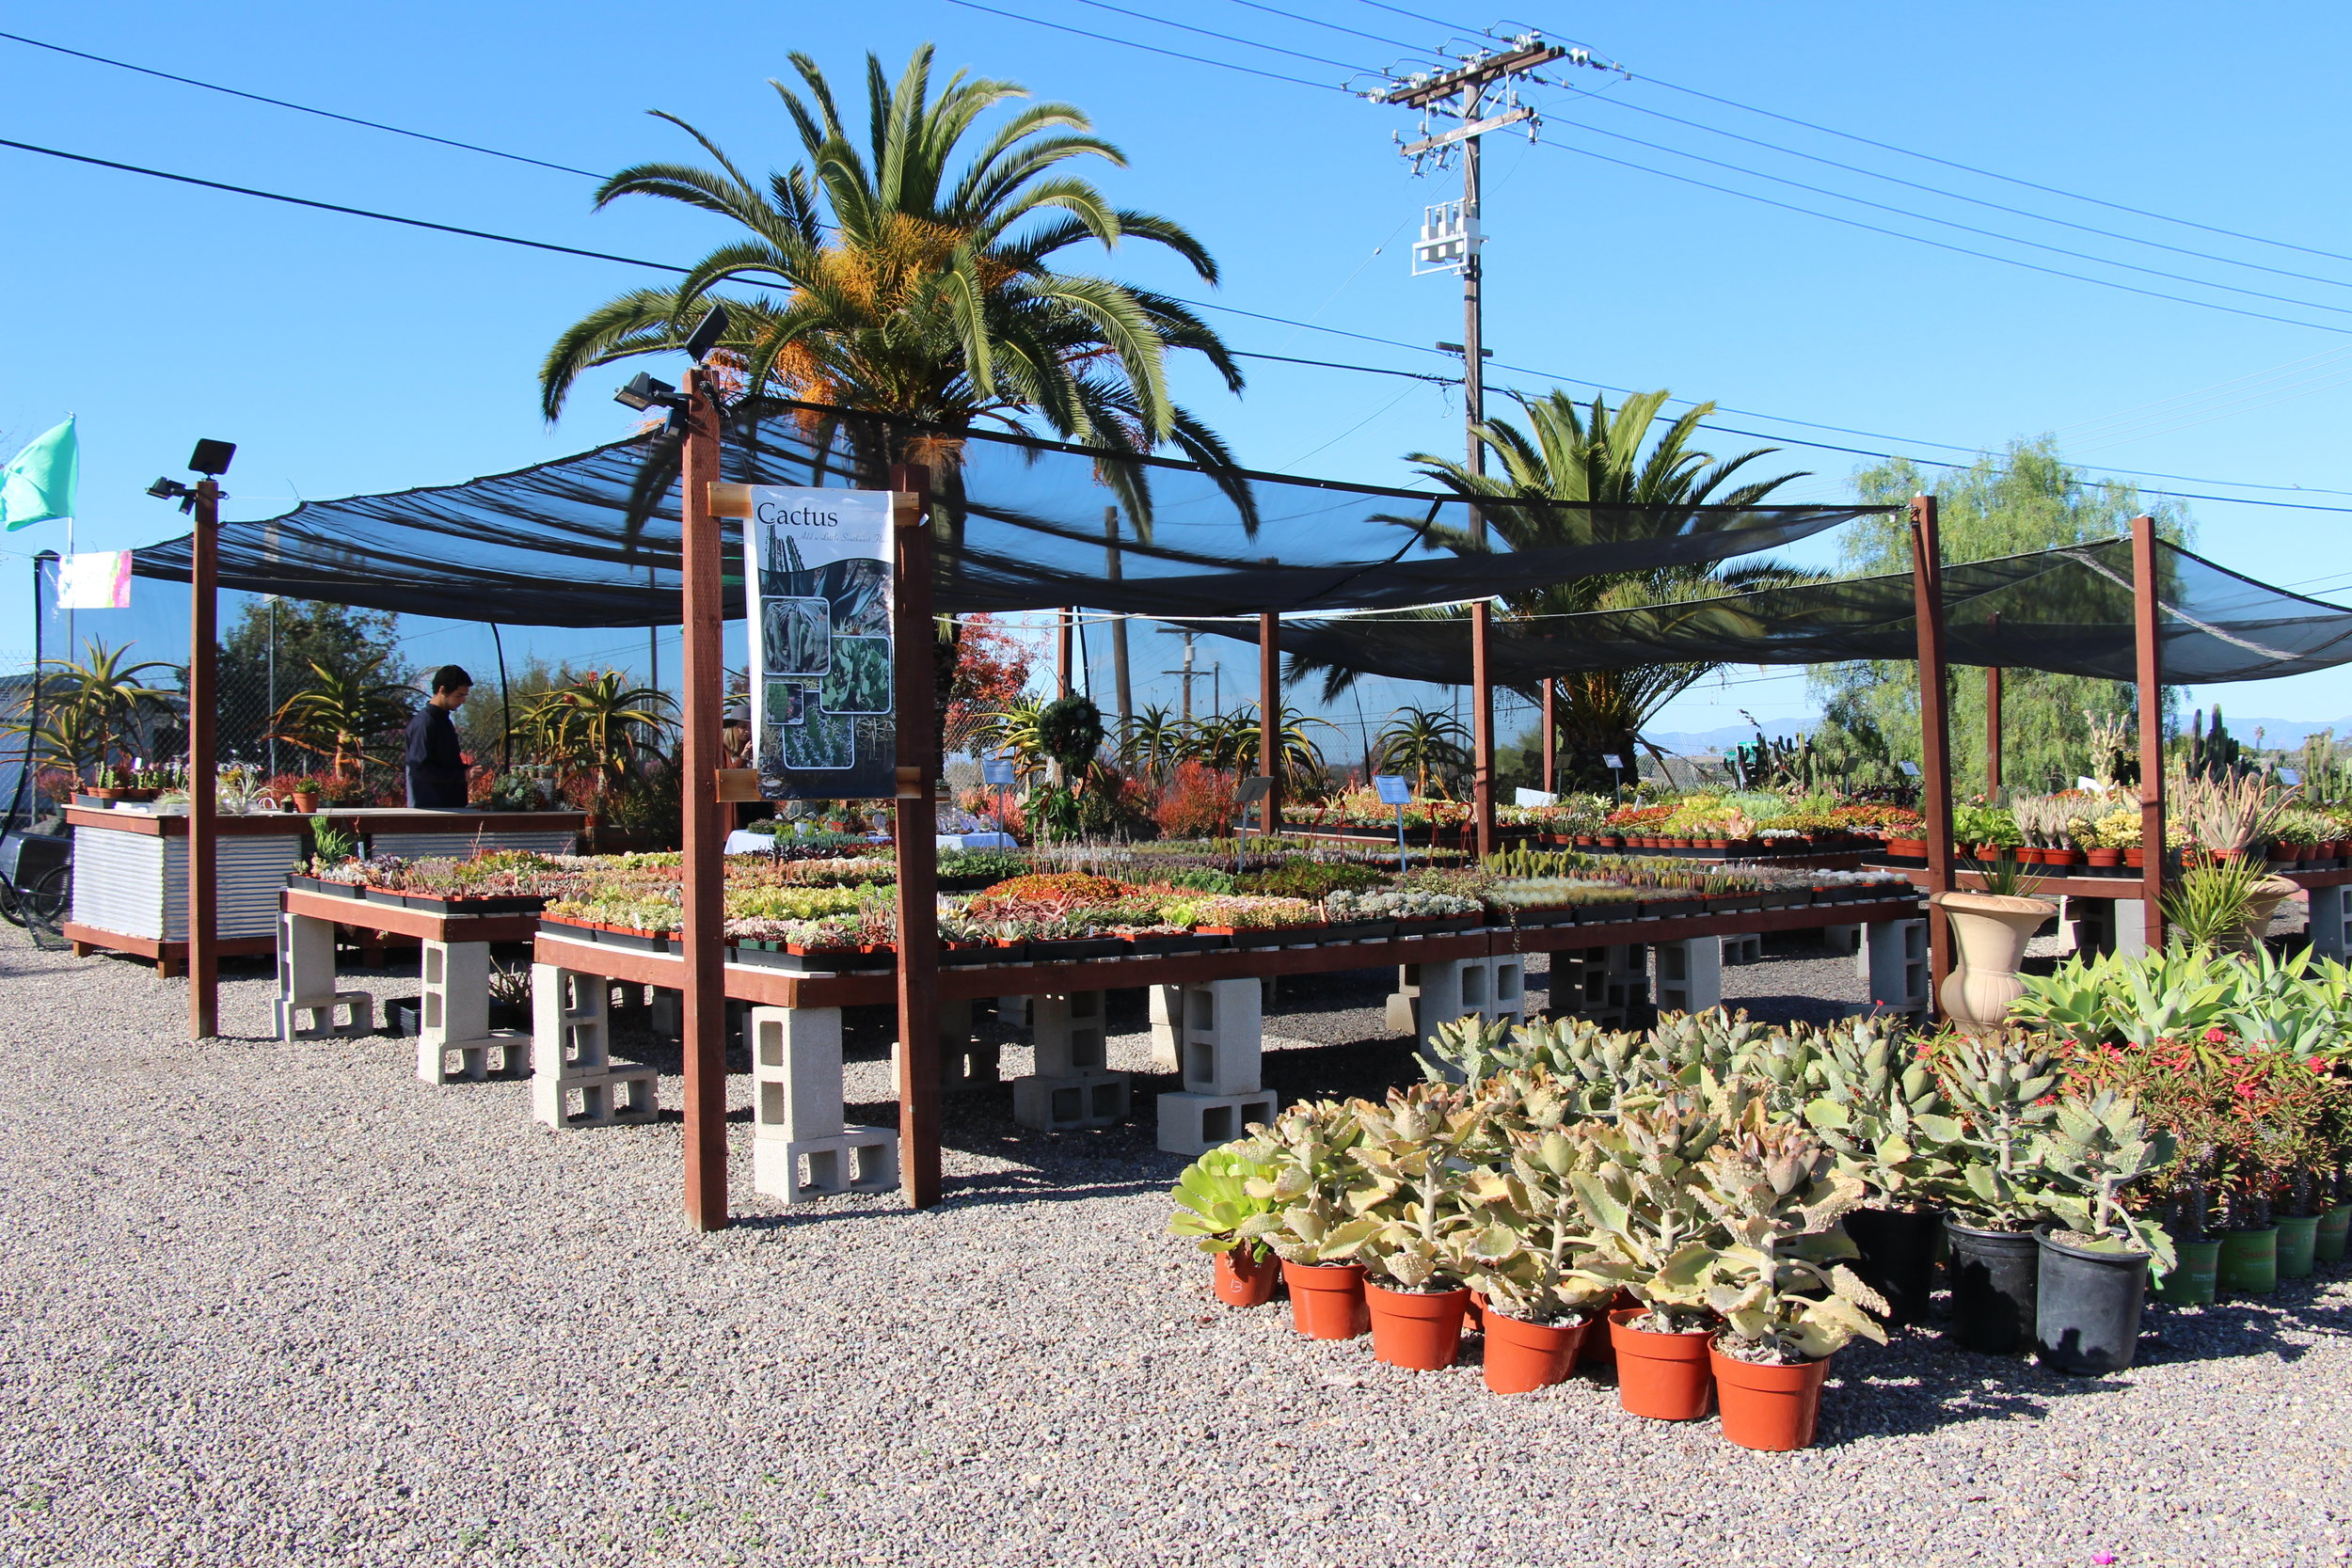 Rancho Vista Nursery in Vista, CA Quality Cactus and Succulents Farm Stand